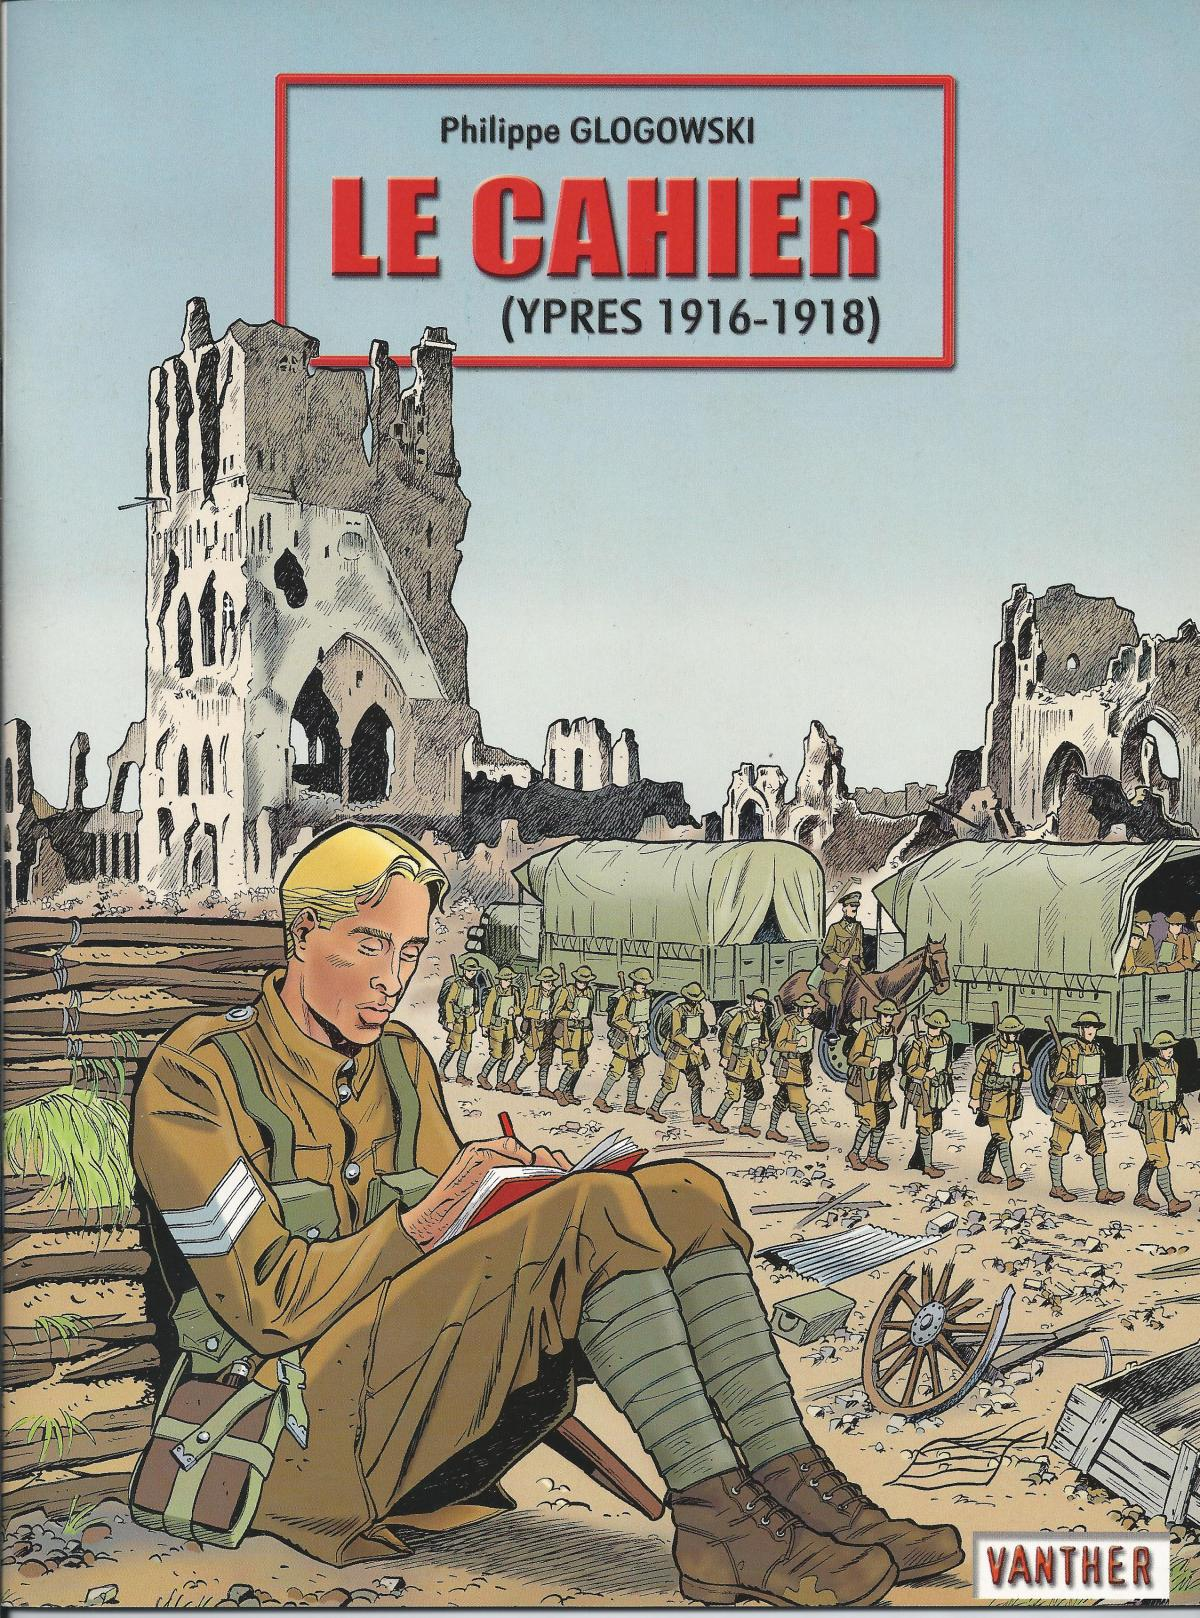 Le cahier (Ypres 1916-1918)